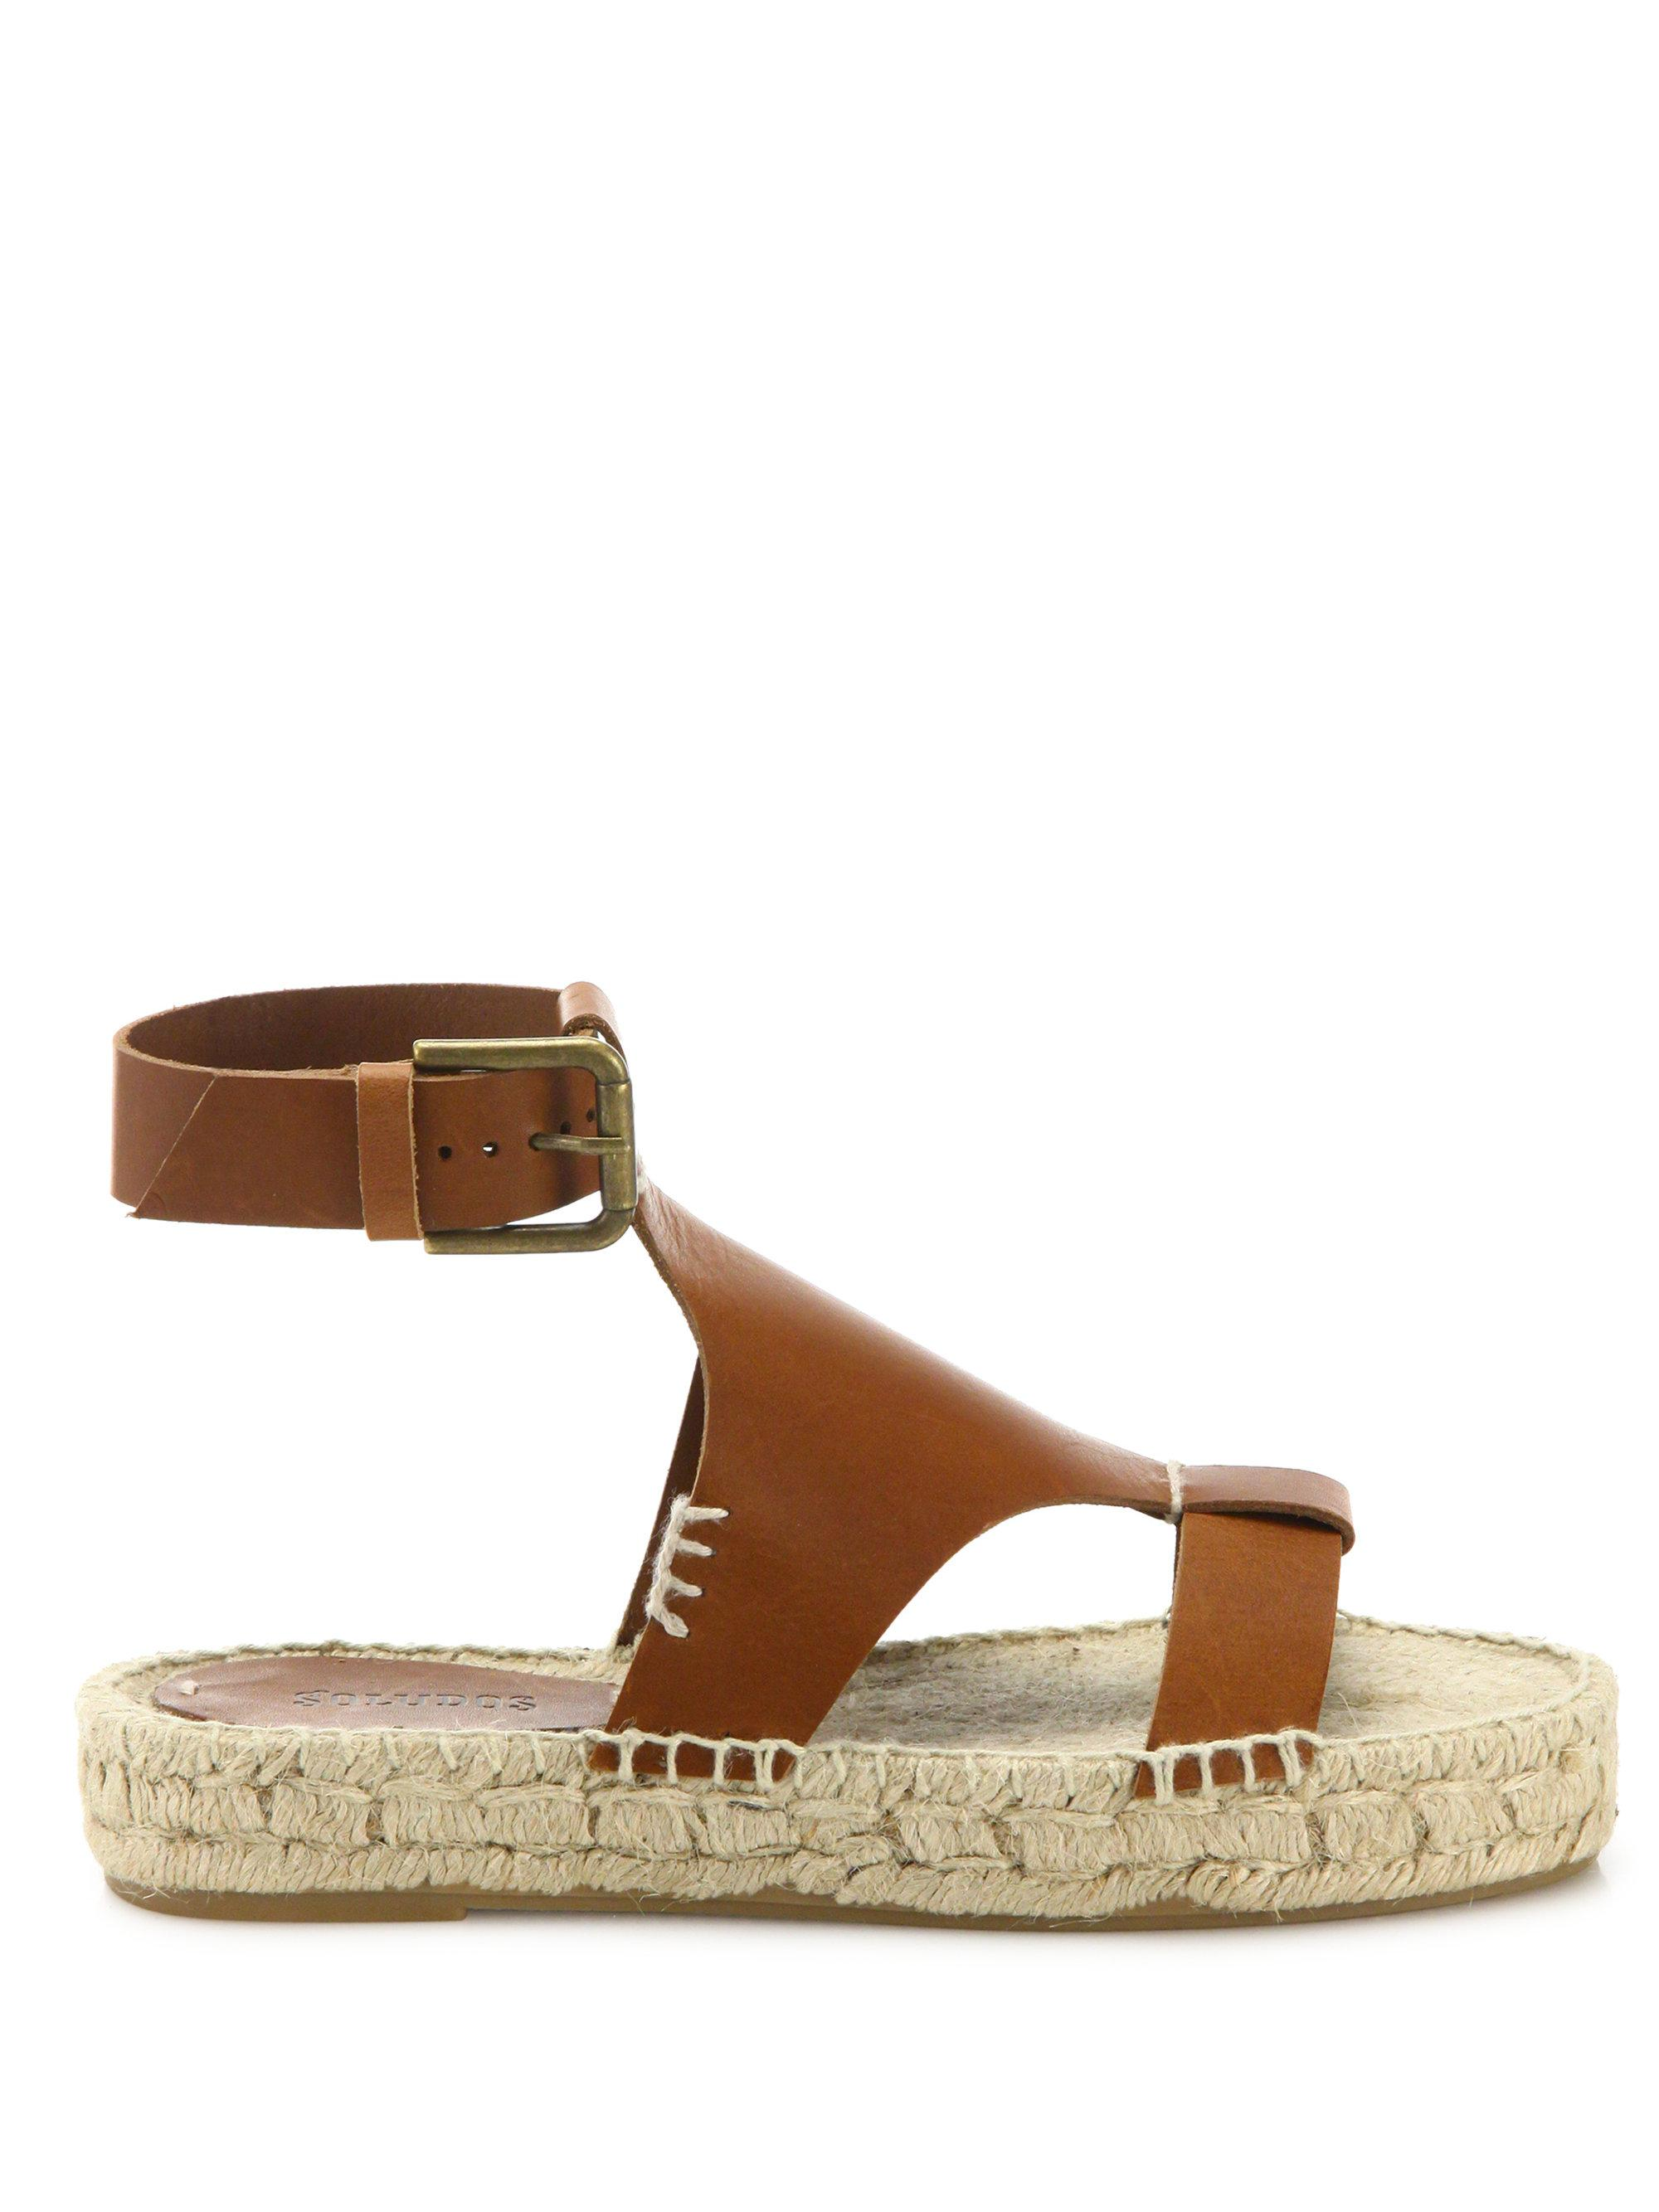 747eed48073 Lyst - Soludos Banded Shield Leather Flatform Espadrilles in Purple